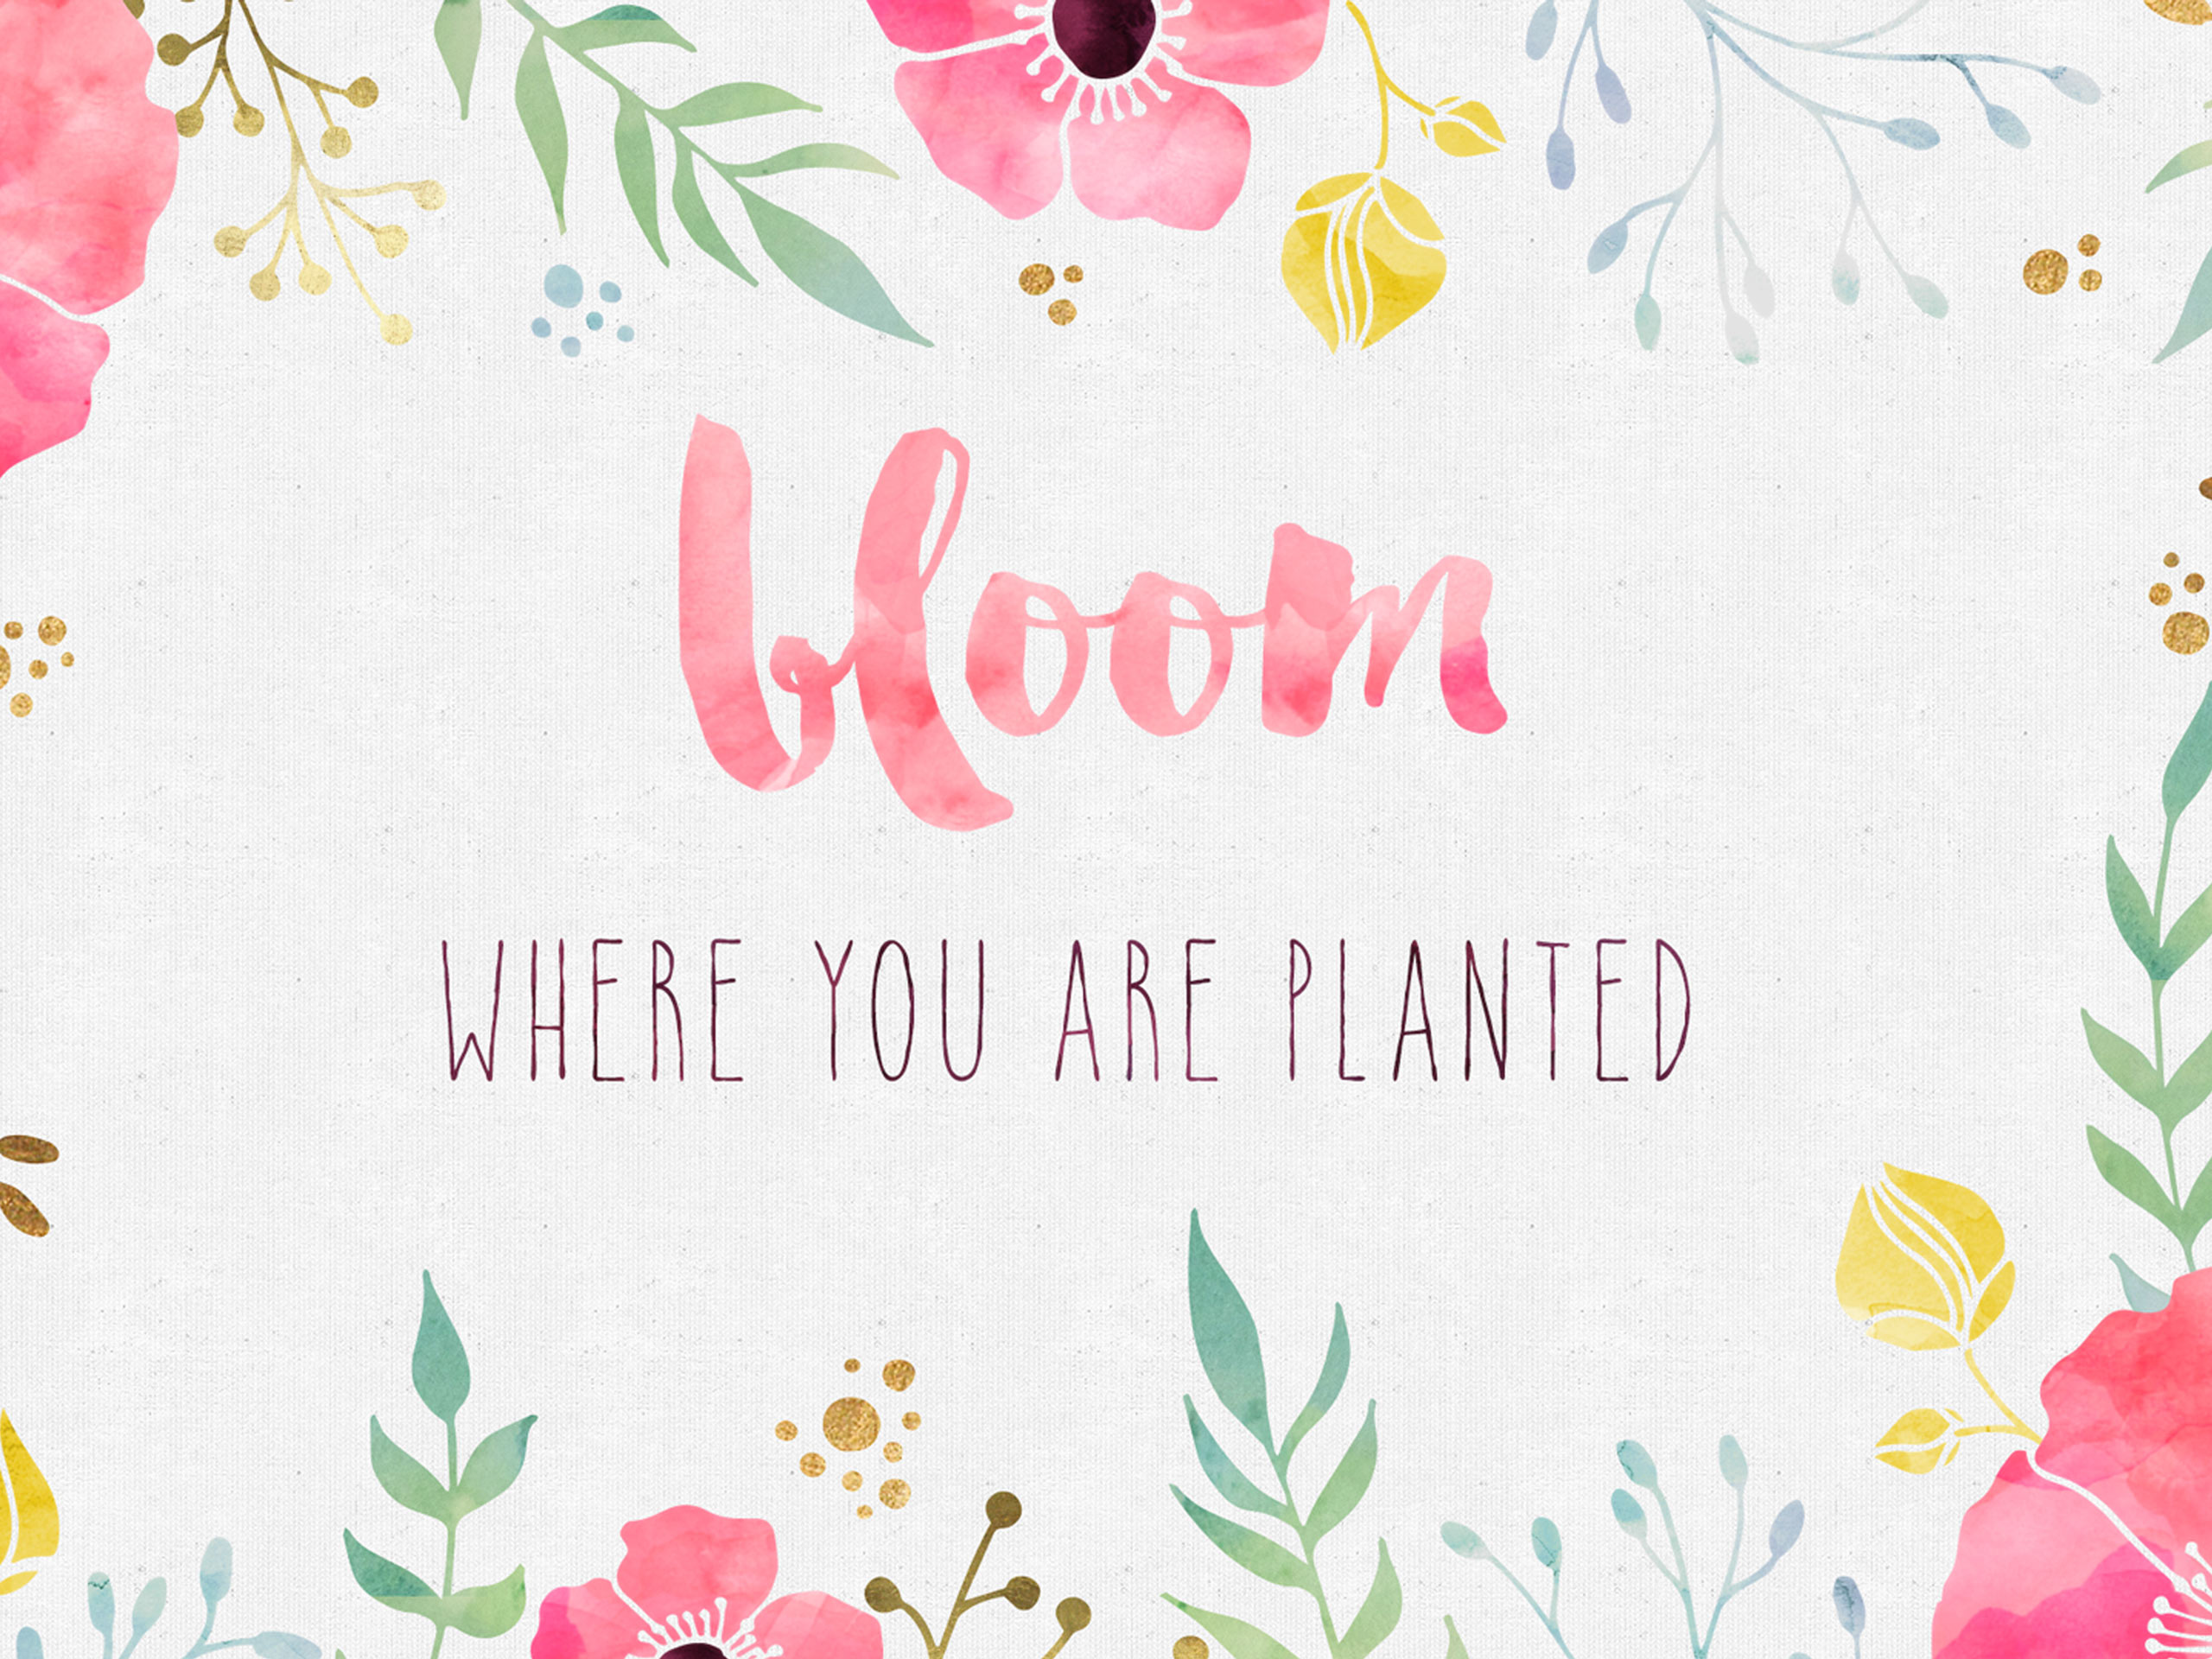 Future Quote Ipad Wallpaper Hd: Bloom Where You Are Planted